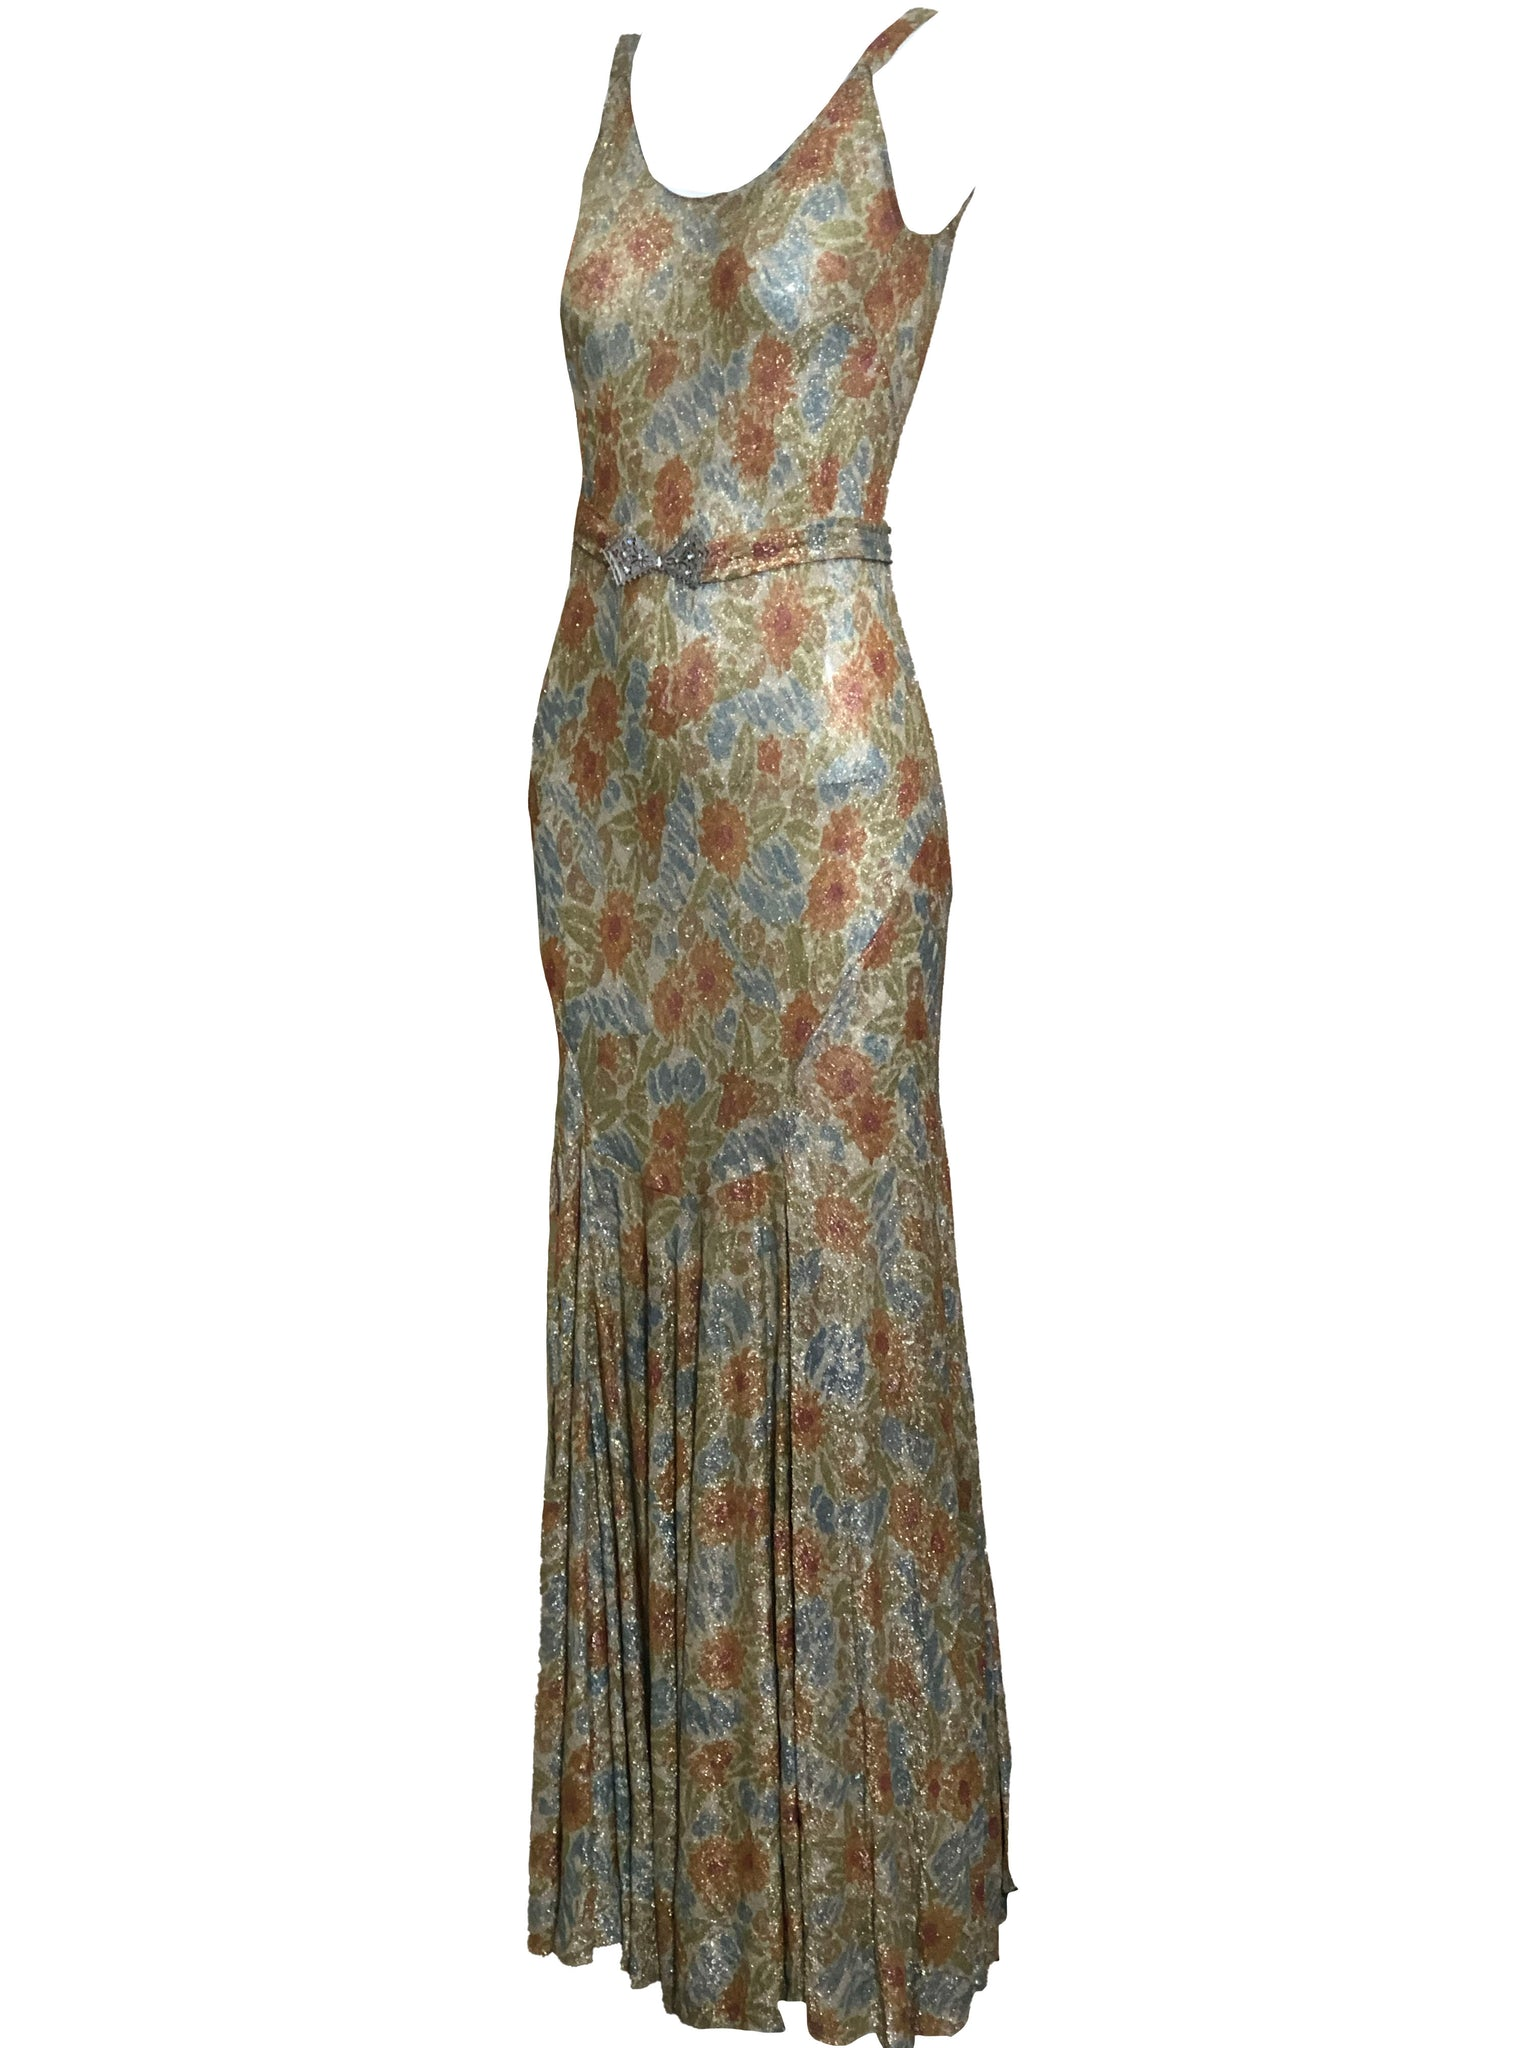 30s Gown Gold Lame with Belt  ANGLE 2 of 5